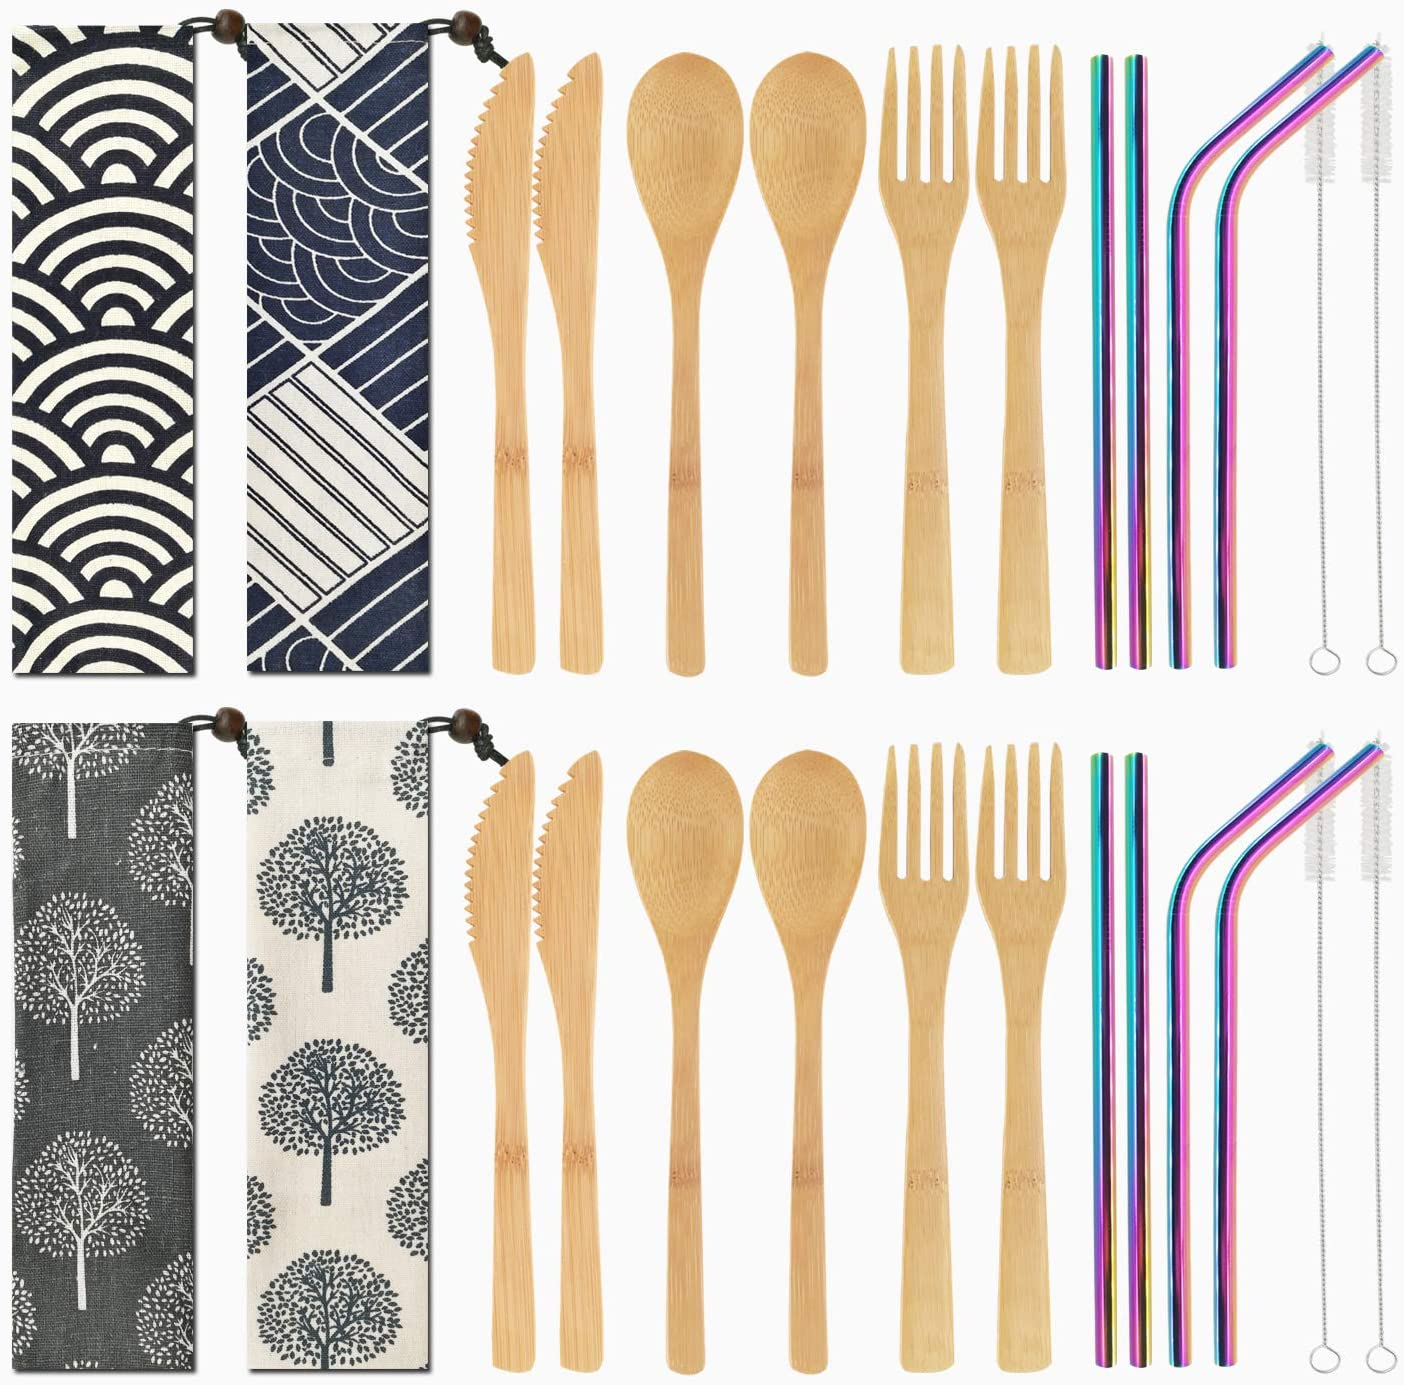 VIKEYHOME 4 Set Bamboo Cutlery Set Reusable Bamboo Utensils Set with Case 7.8 Inches Bamboo Knife Fork Spoon Multi-colors Metal Straw,Portable Utensils for Travel Picnic Office School (Rainbow Straw)